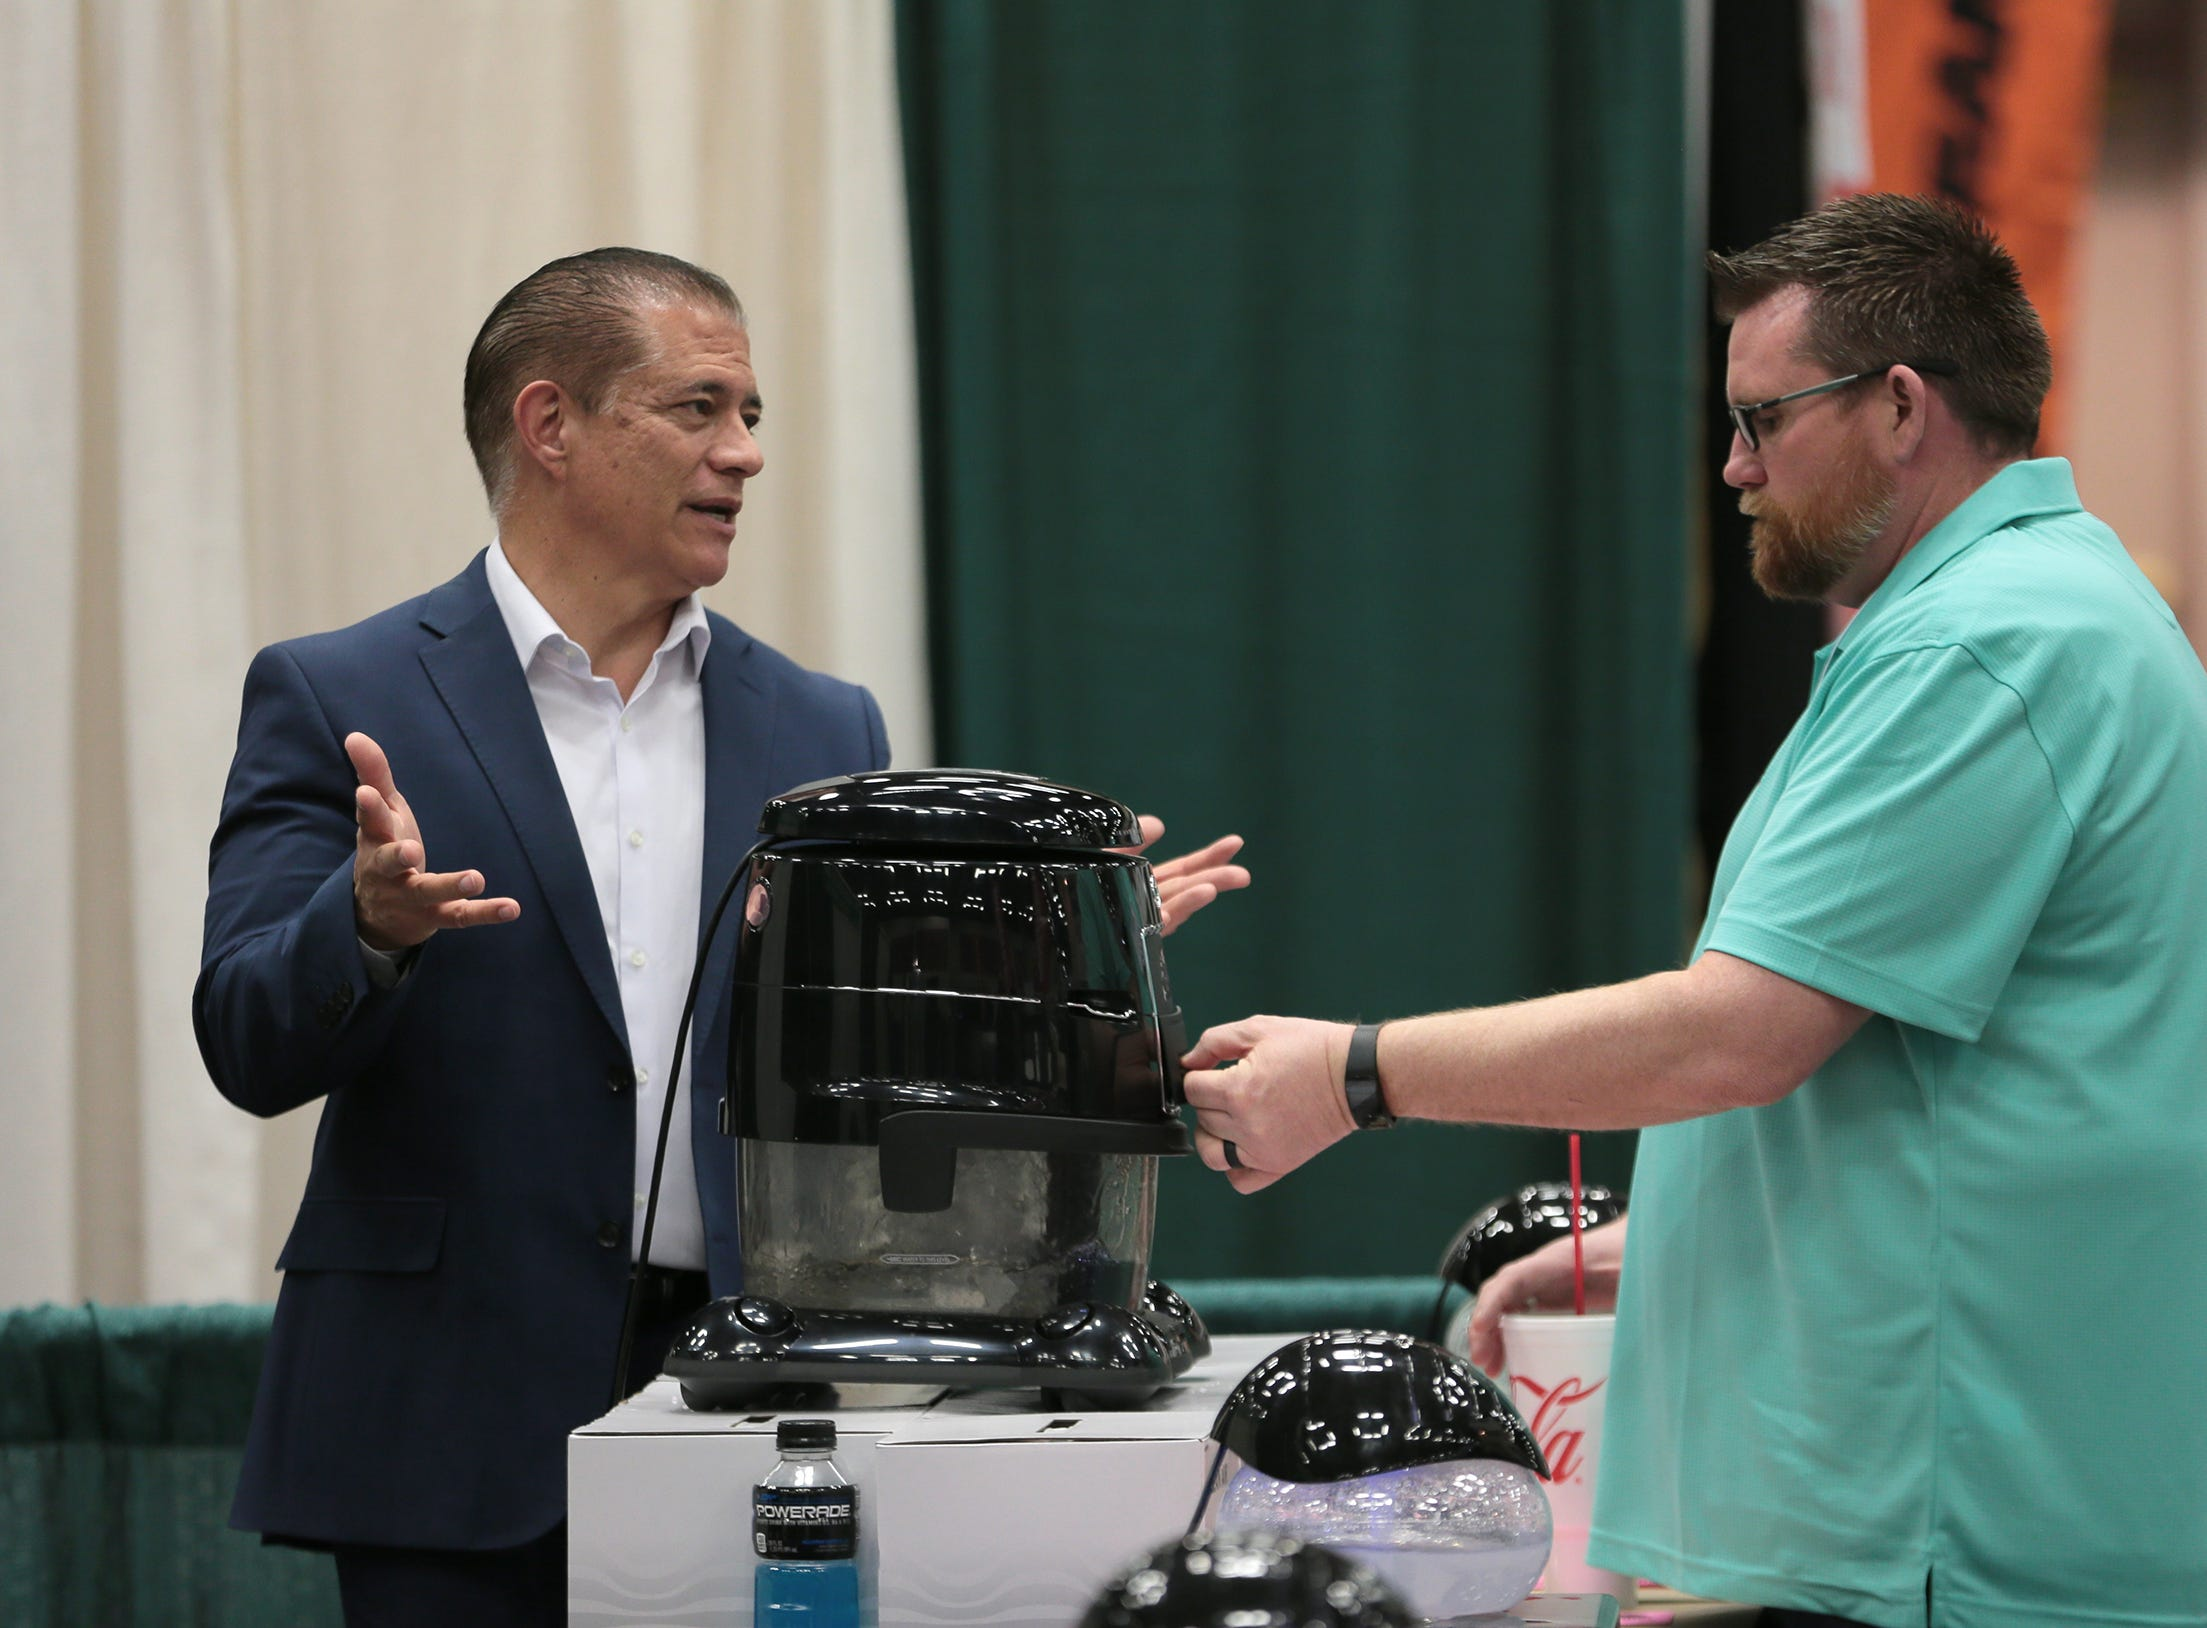 The 19th Annual El Paso Home and Garden Show is in full swing at the El Paso Convention Center in downtown El Paso. Find anything for your home from art to air conditioning. The show continues Sunday from 11am-5pm.